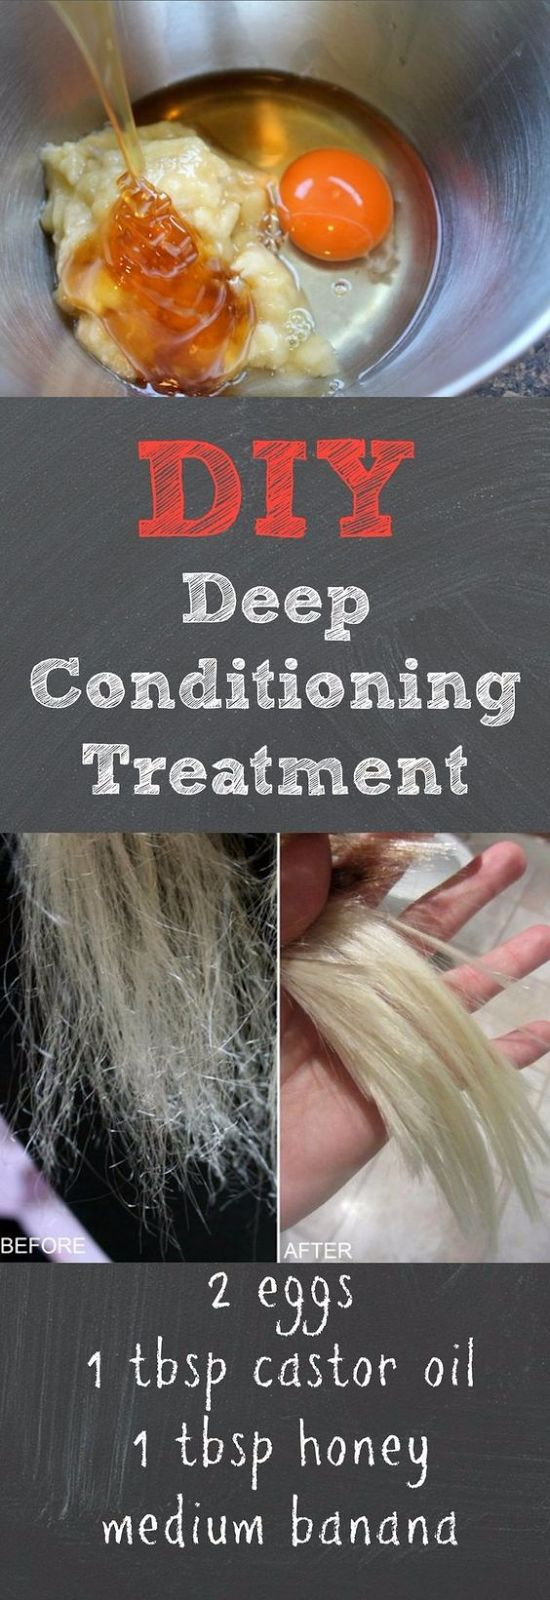 DIY DEEP CONDITIONING TREATMENT WITH EGG AND CASTOR OIL